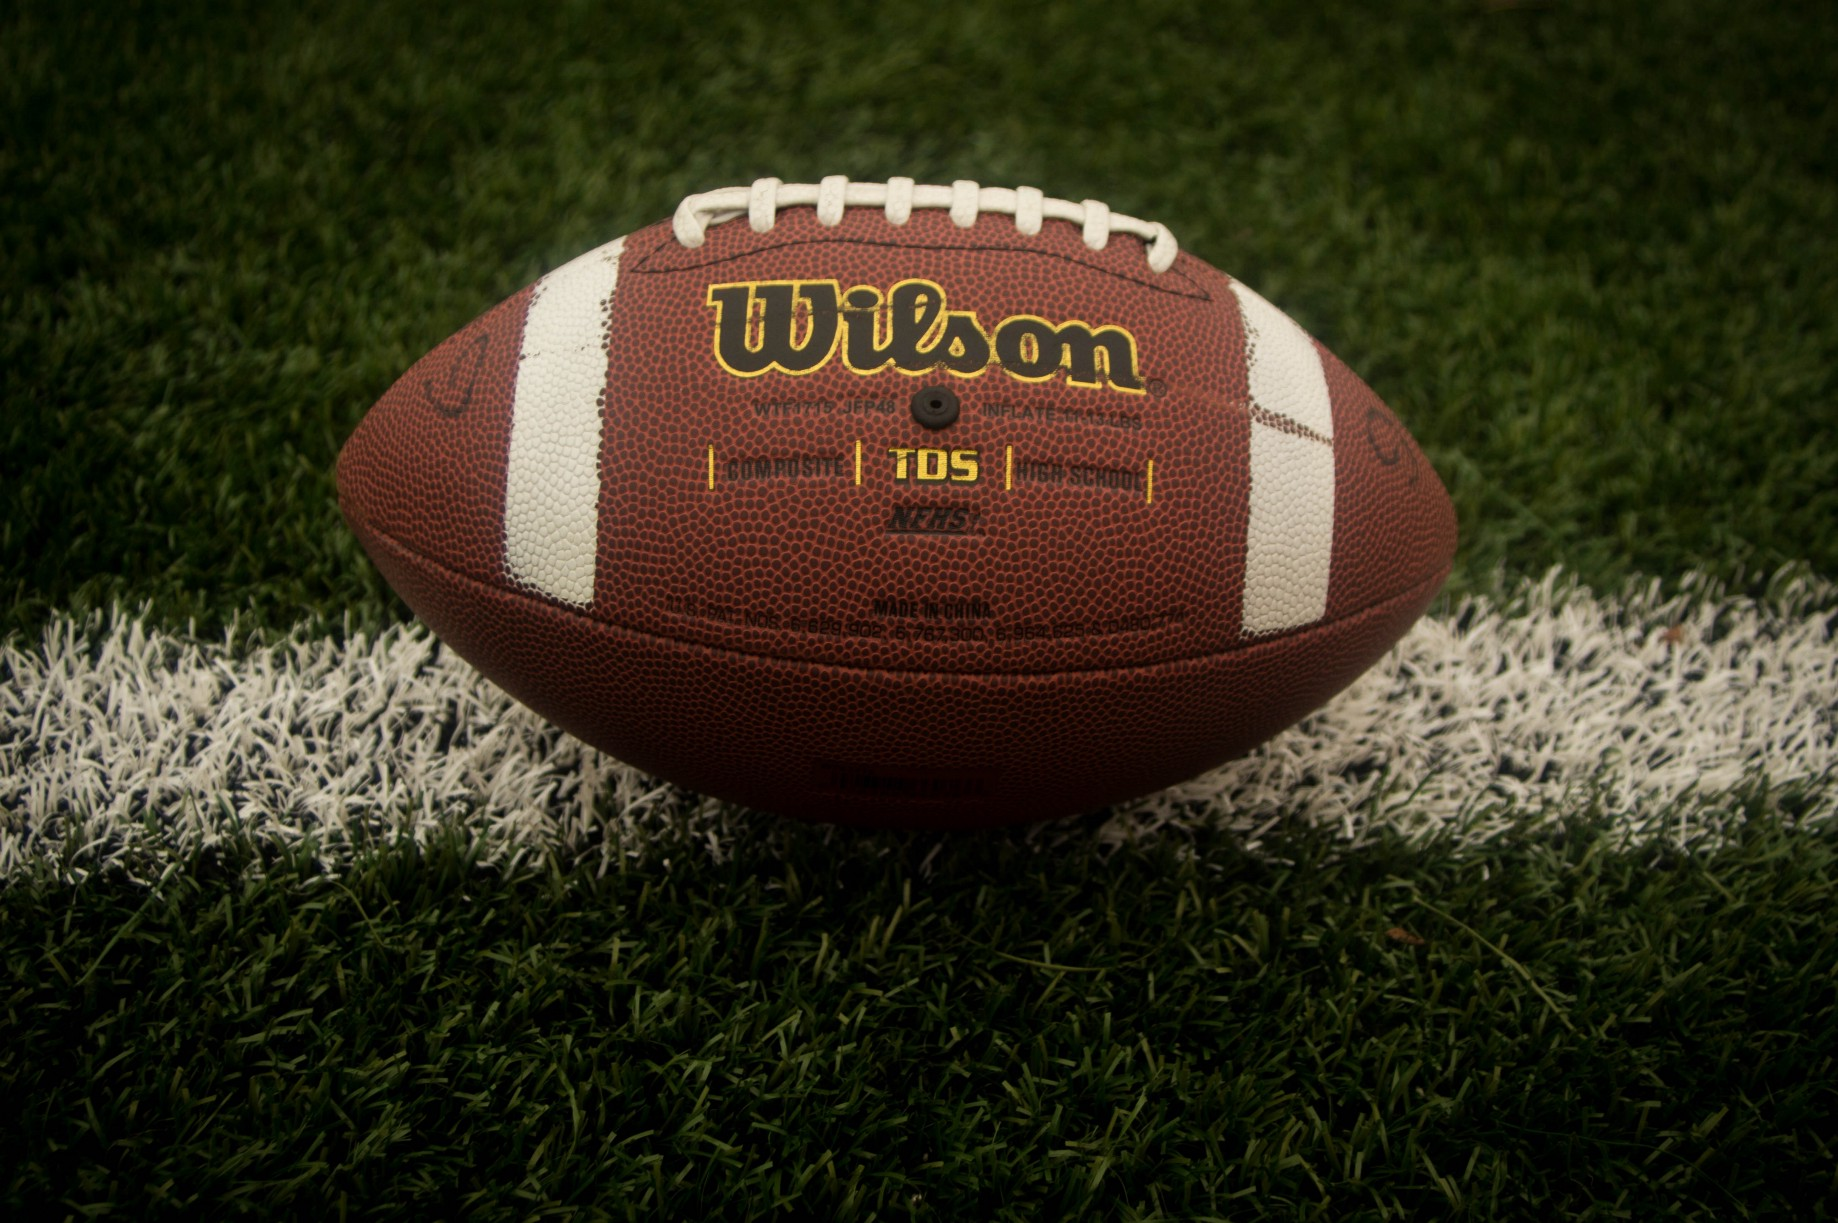 How to Win in the NFL - Towards Data Science